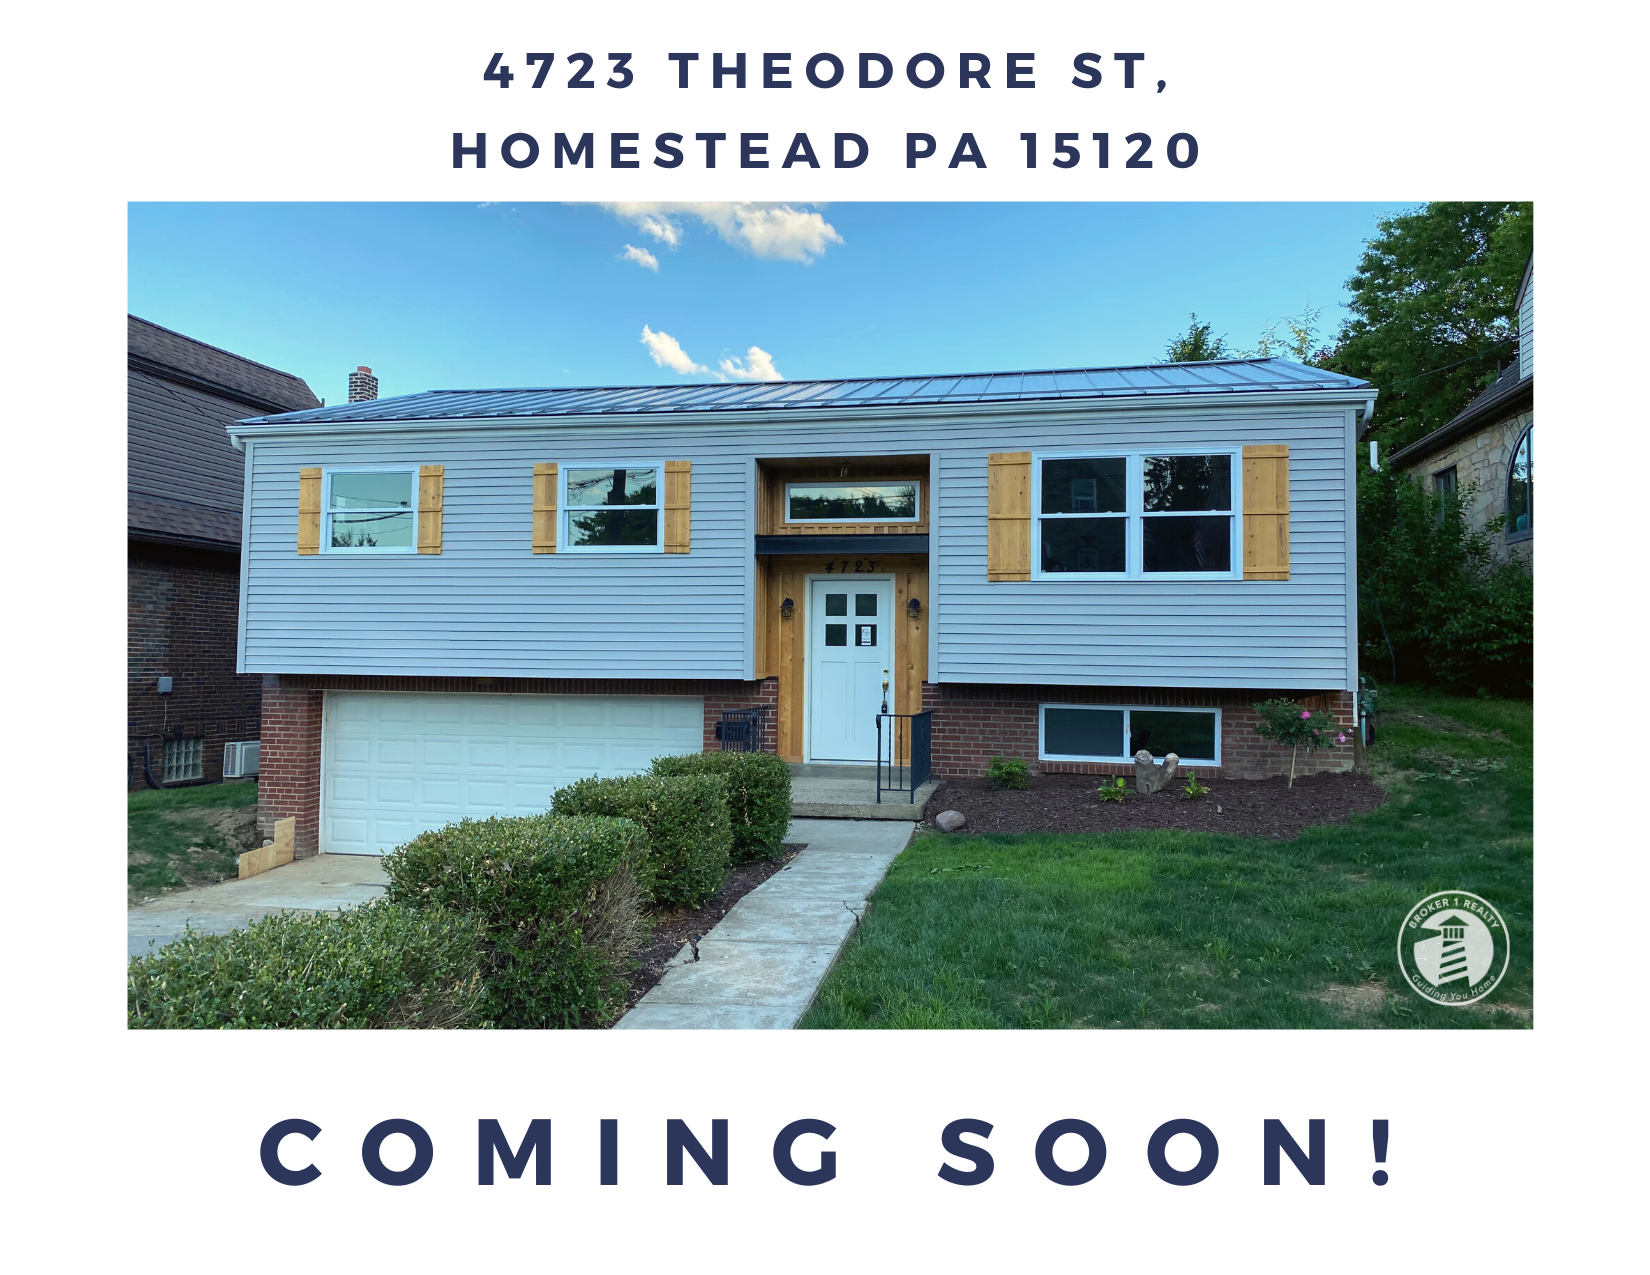 COMING SOON: 4723 Theodore Street